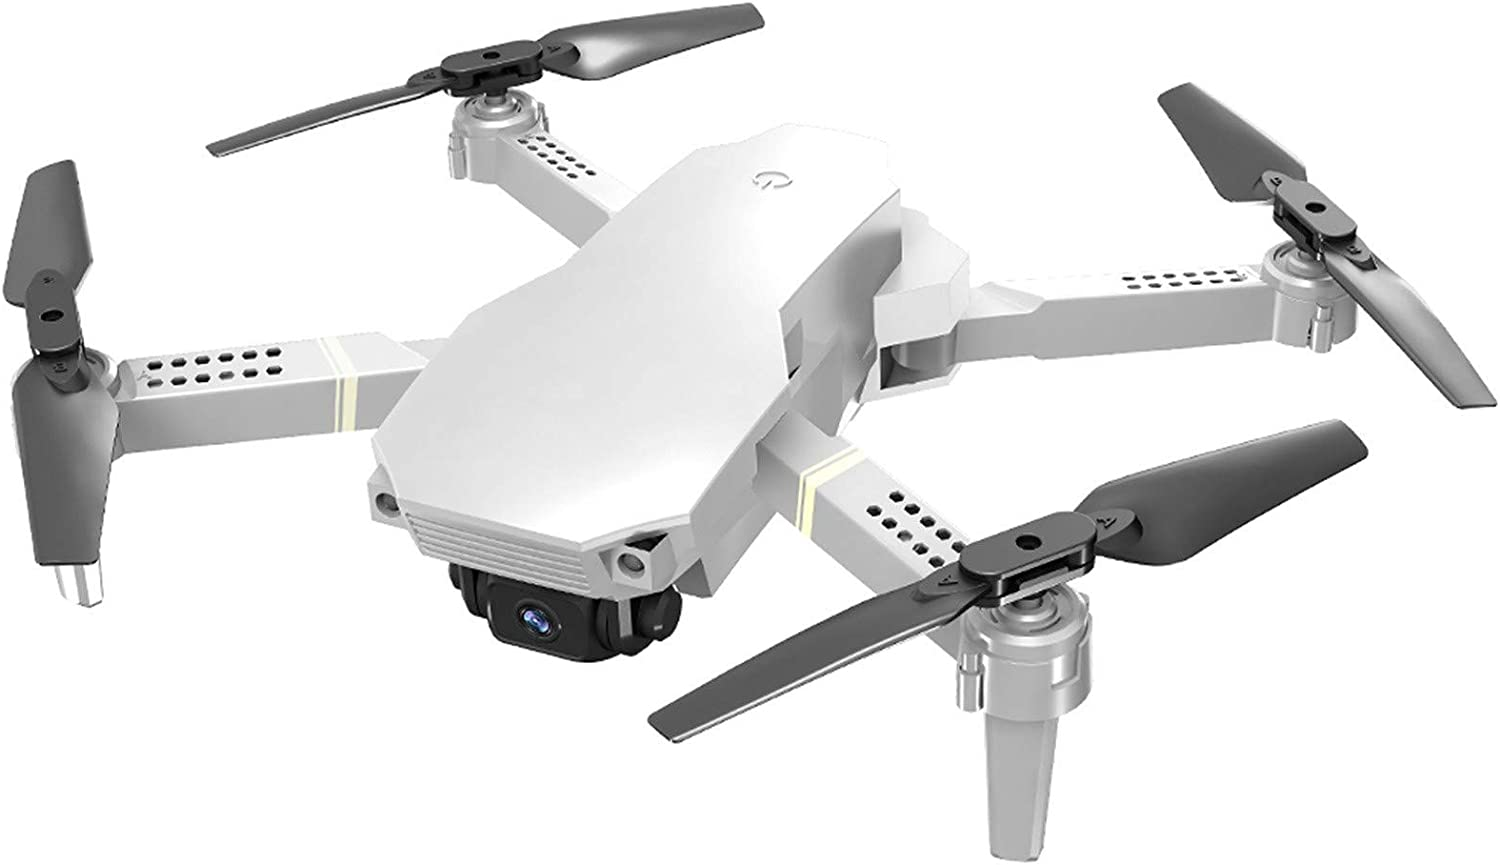 H702 Foldable Drones with Camera for Adults, 4K HD Mini WiFi FPV RC Quadcopter with Live Video, Auto Return Home,Altitude Hold,Headless Mode,One Key Take Off/Landing, Easy to Use for Beginner